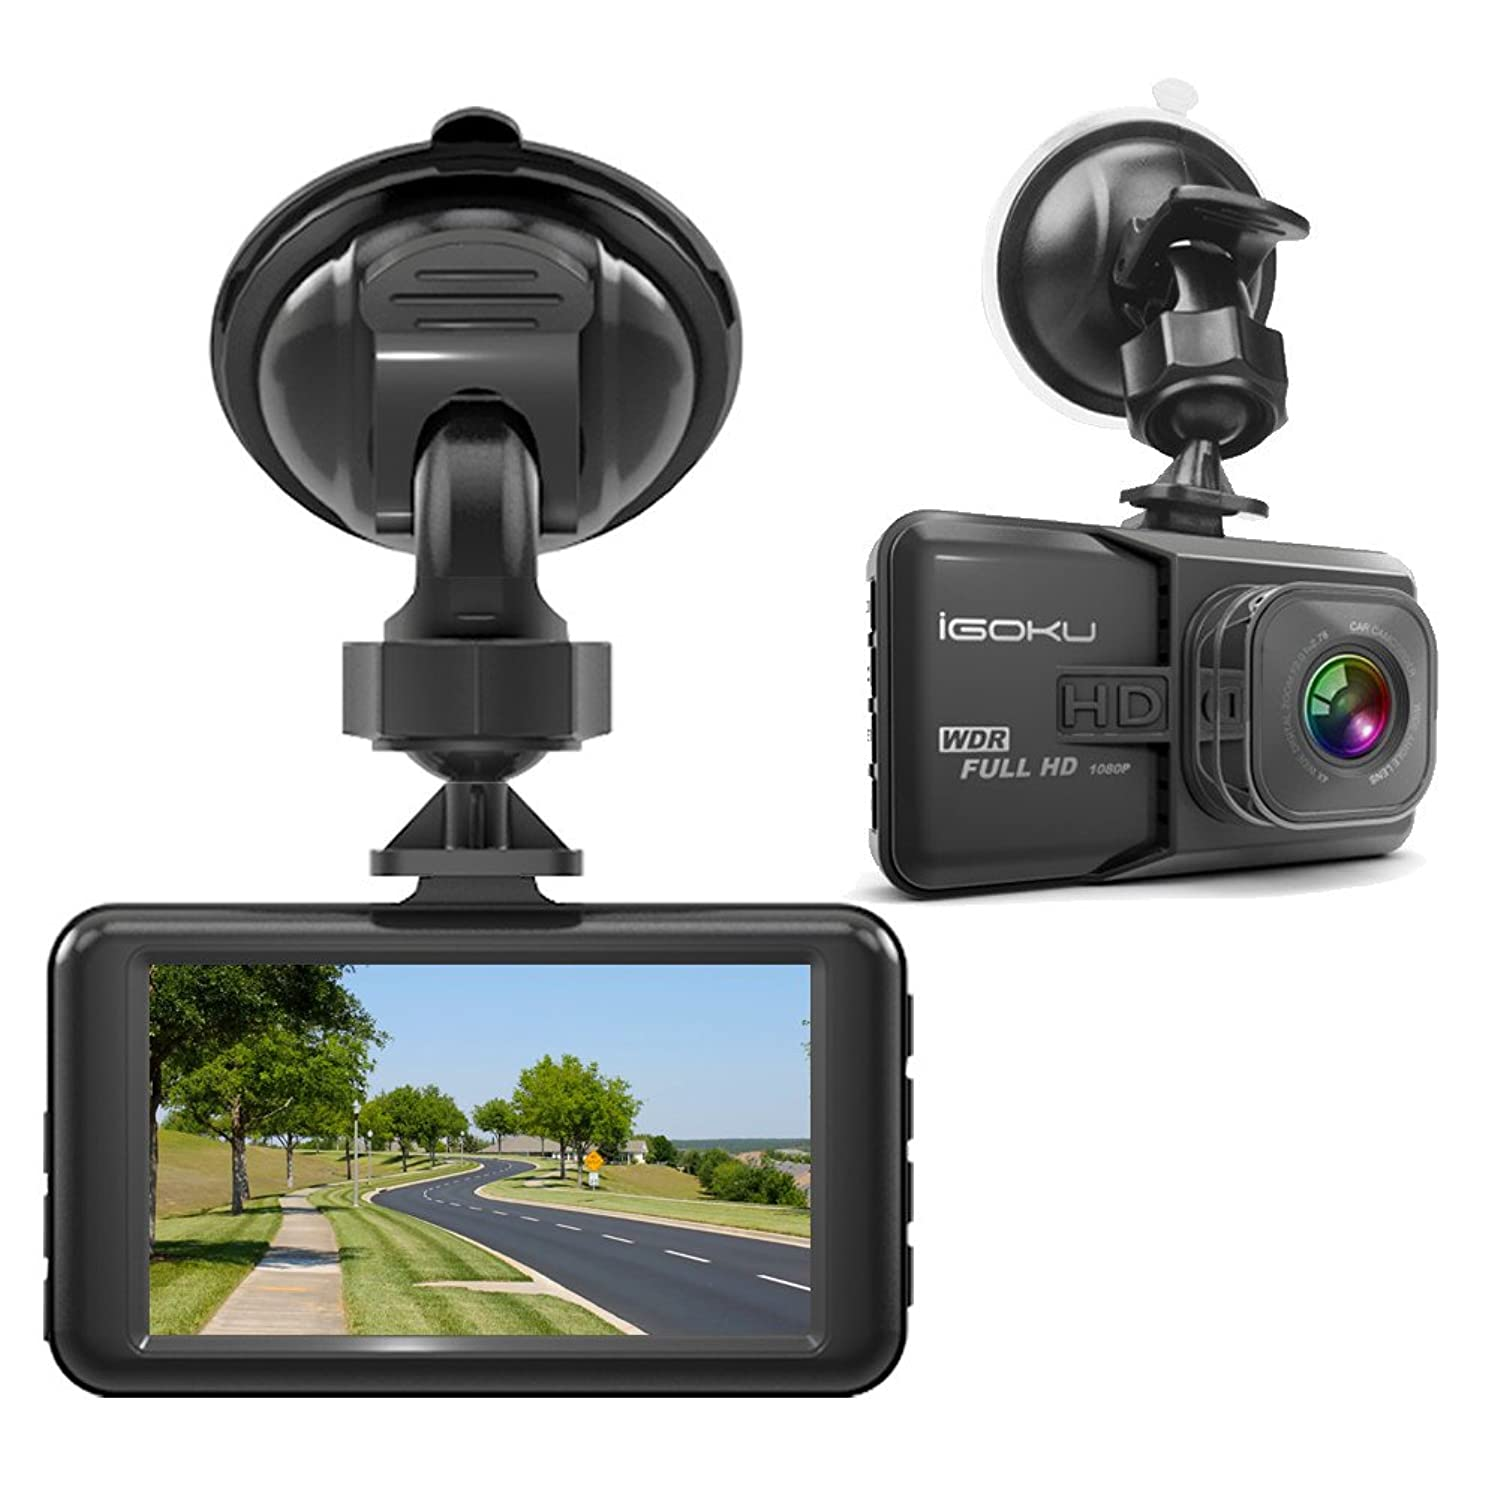 iGOKU Dash Cam 1080P Full HD 1920x1080, 170° Wide Angle, 3.0